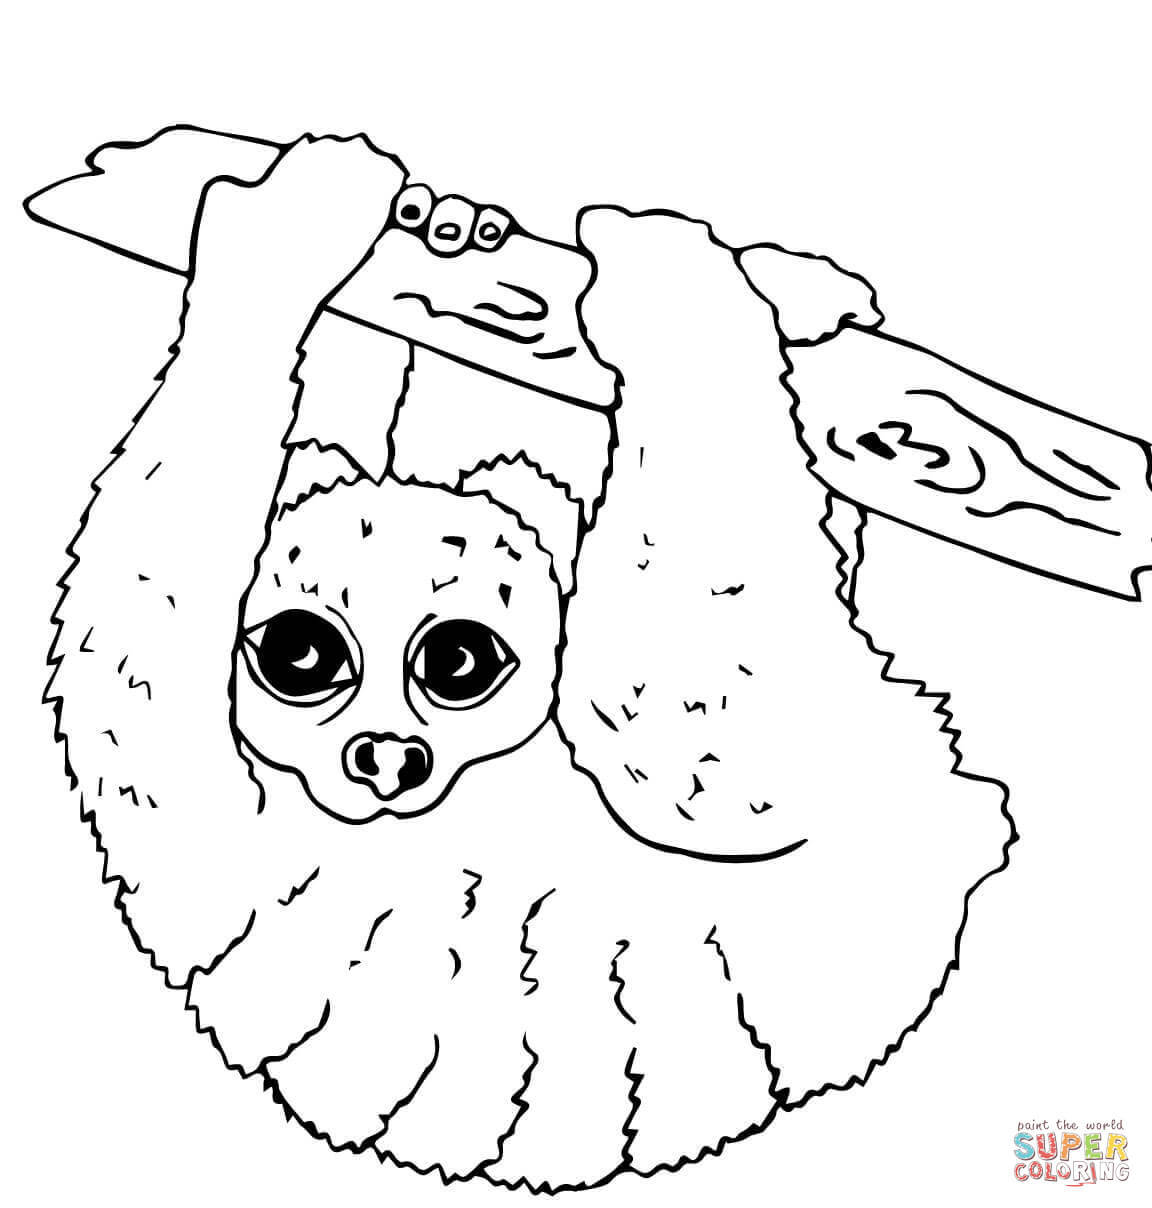 nocturnal animals coloring sheets top 10 porcupine coloring pages for toddlers nocturnal coloring nocturnal animals sheets